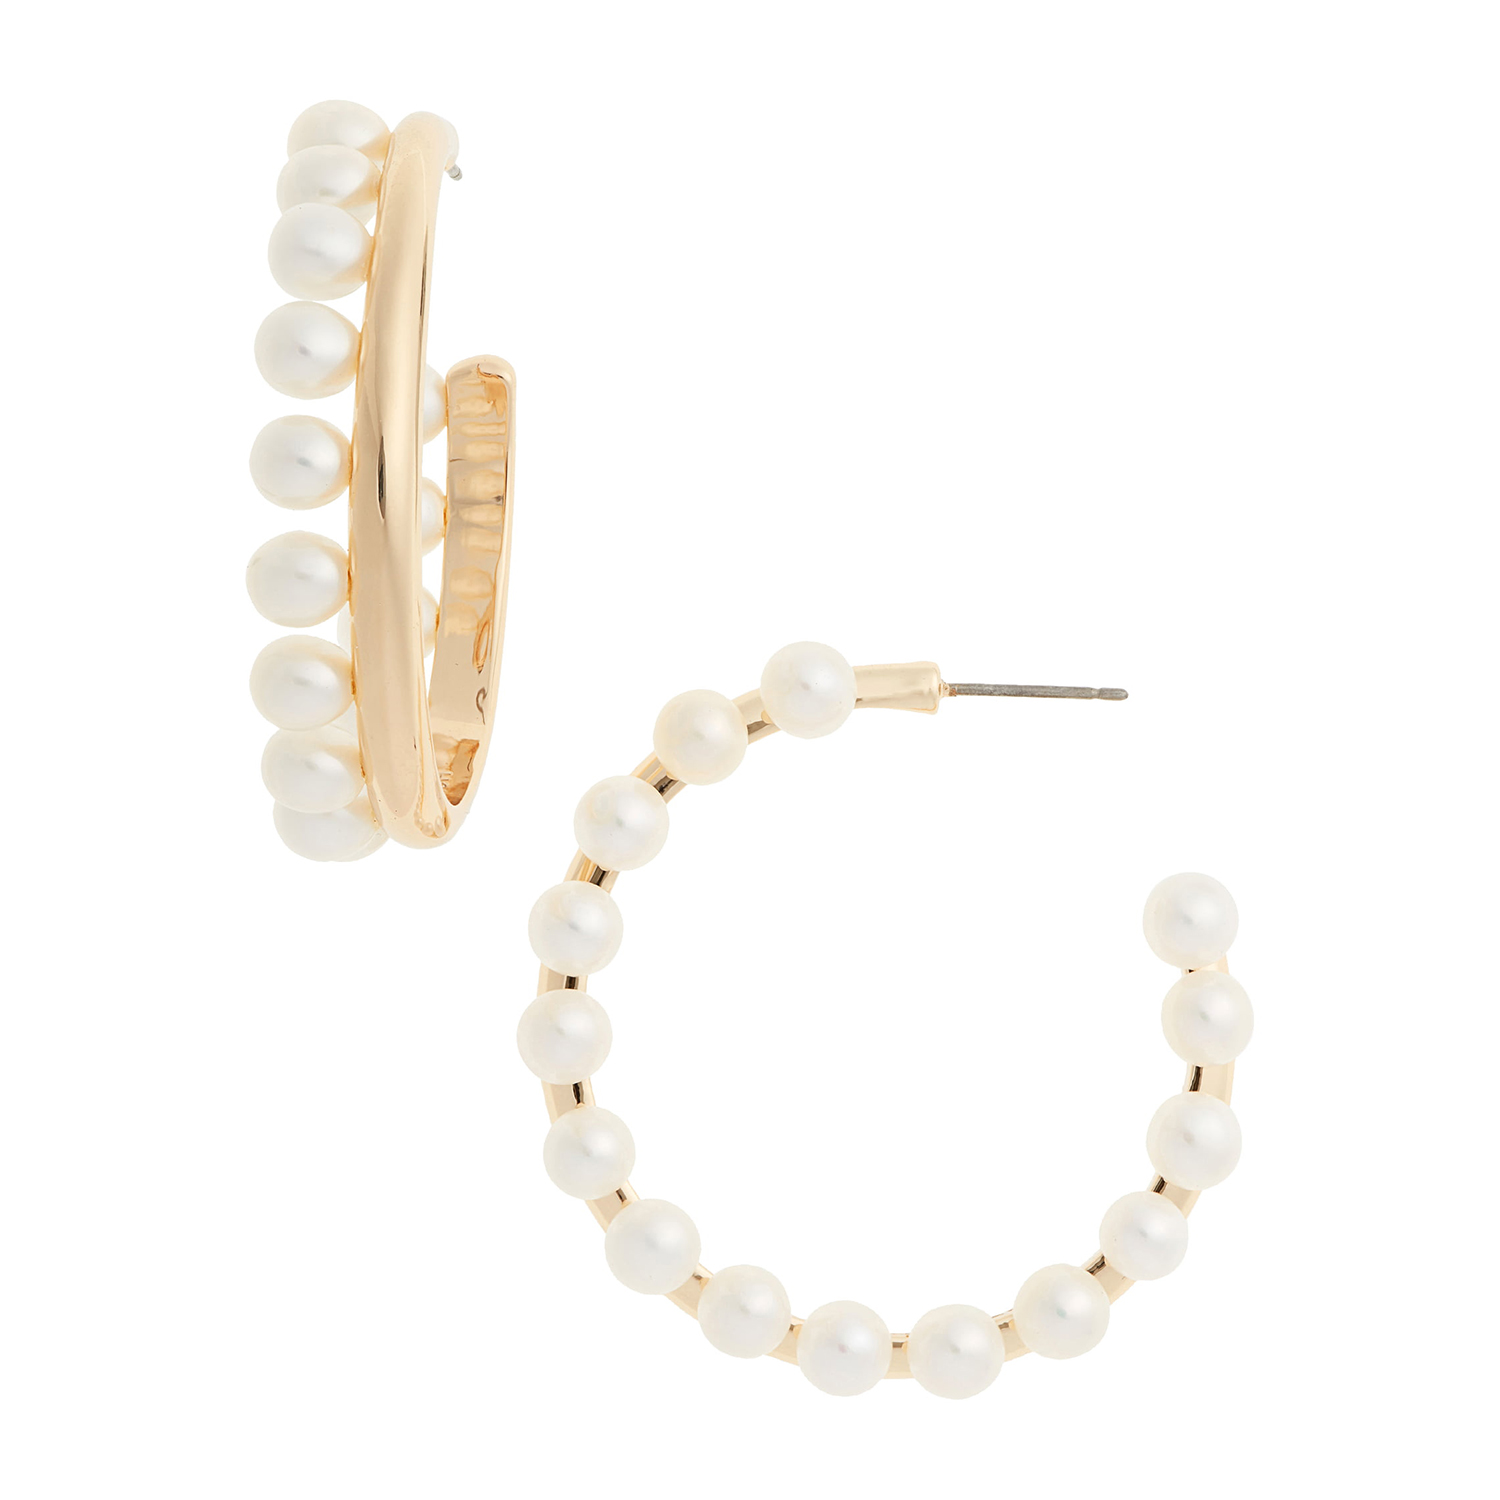 Tory Burch Pearl Fringe Hoop Earrings